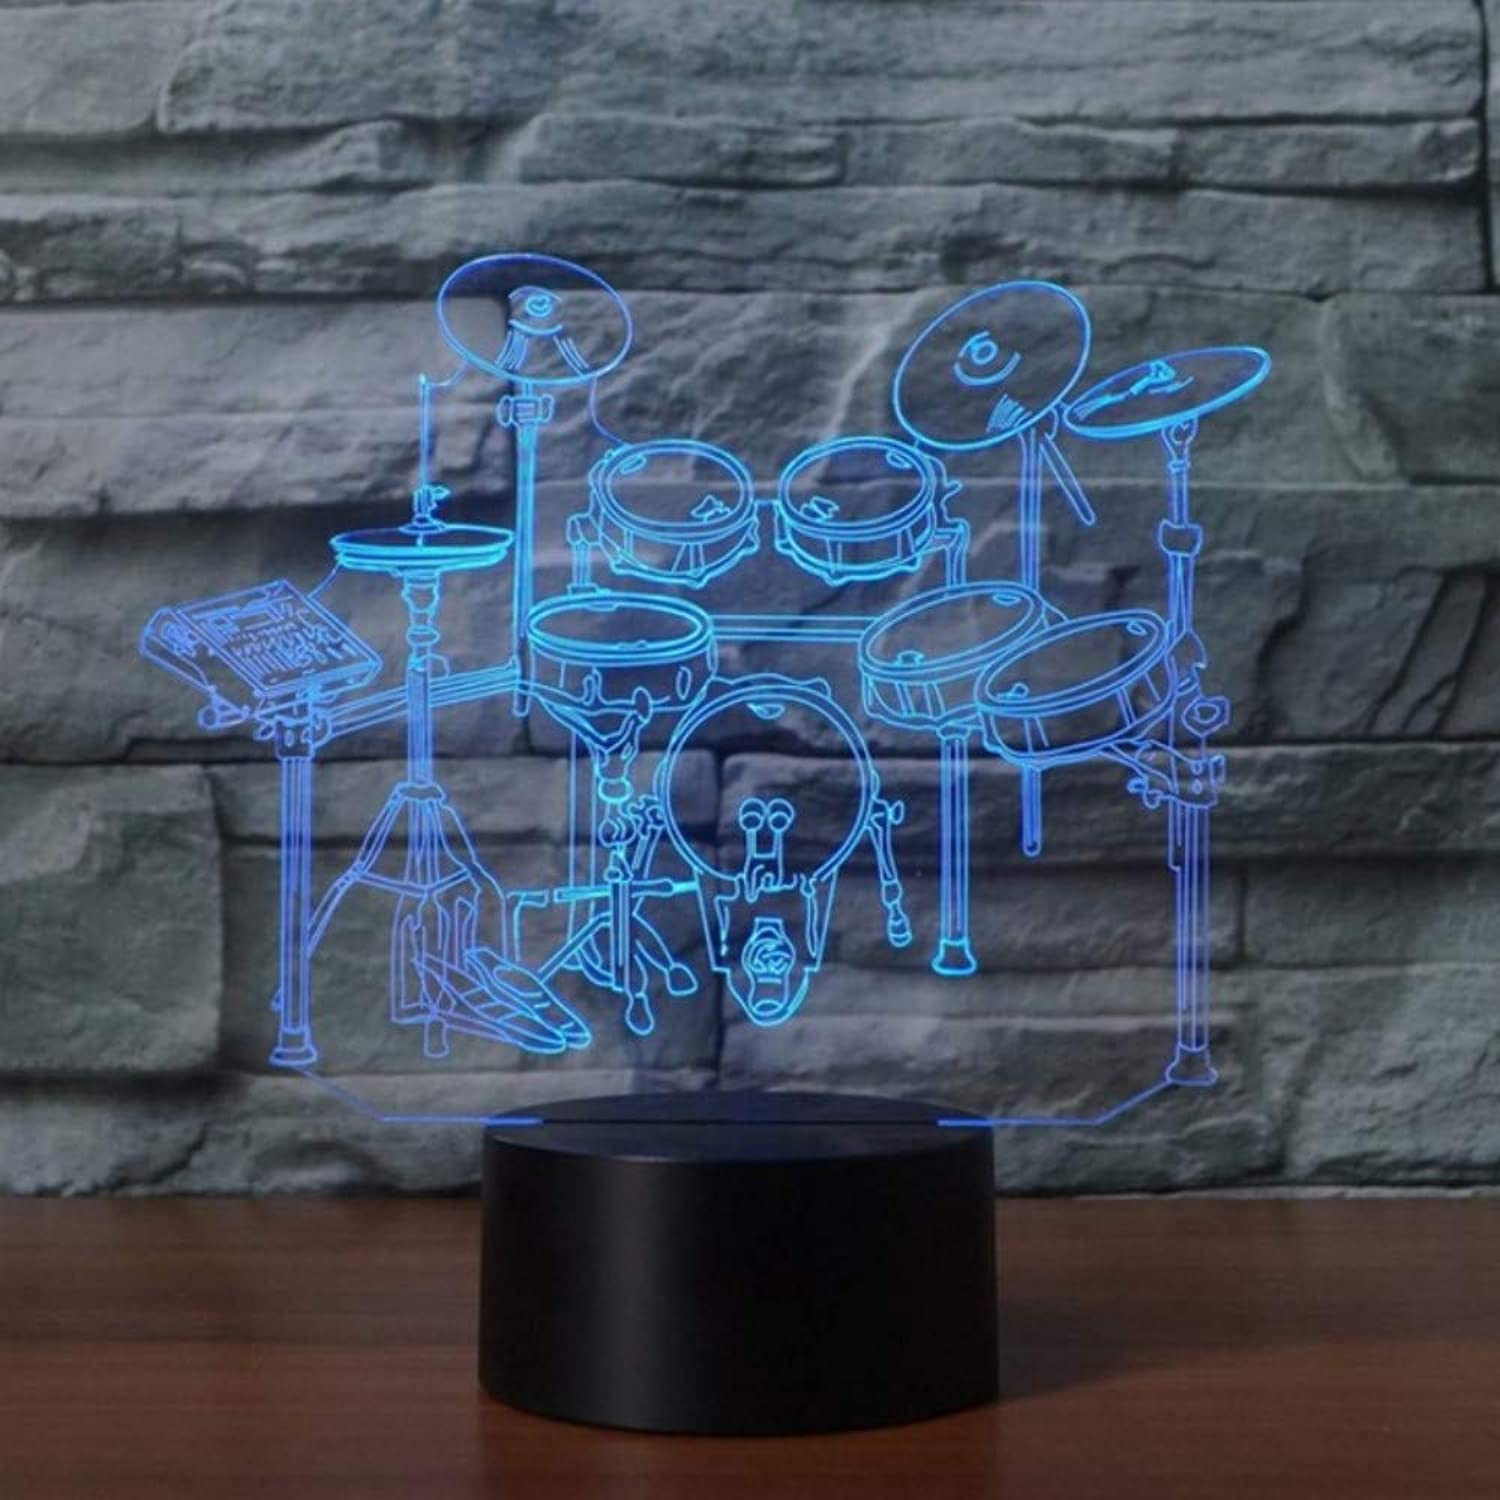 Zonxn 3D Led Home Decor 7 colors Rack Drum Set Modelling Night Lights Musical Instruments Table Lamp Kids Bedside Light Fixture Gifts